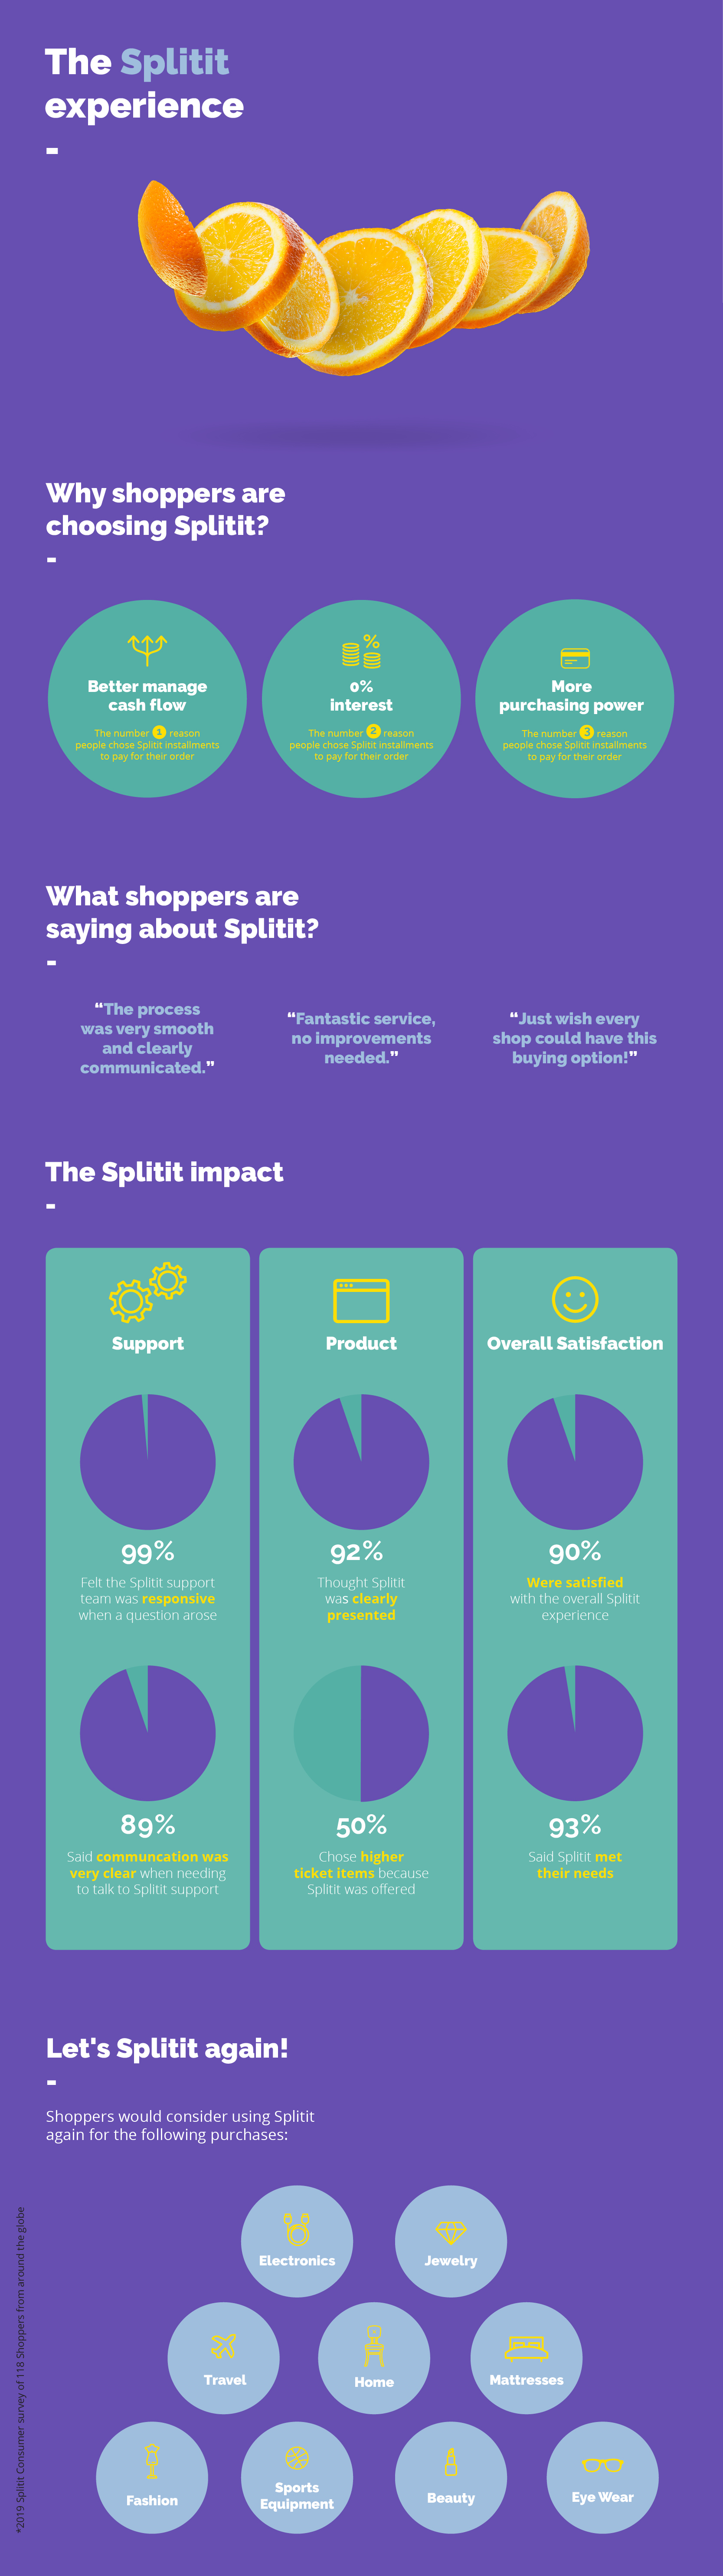 An infographic showing the experience that shoppers have when purchasing with Splitit